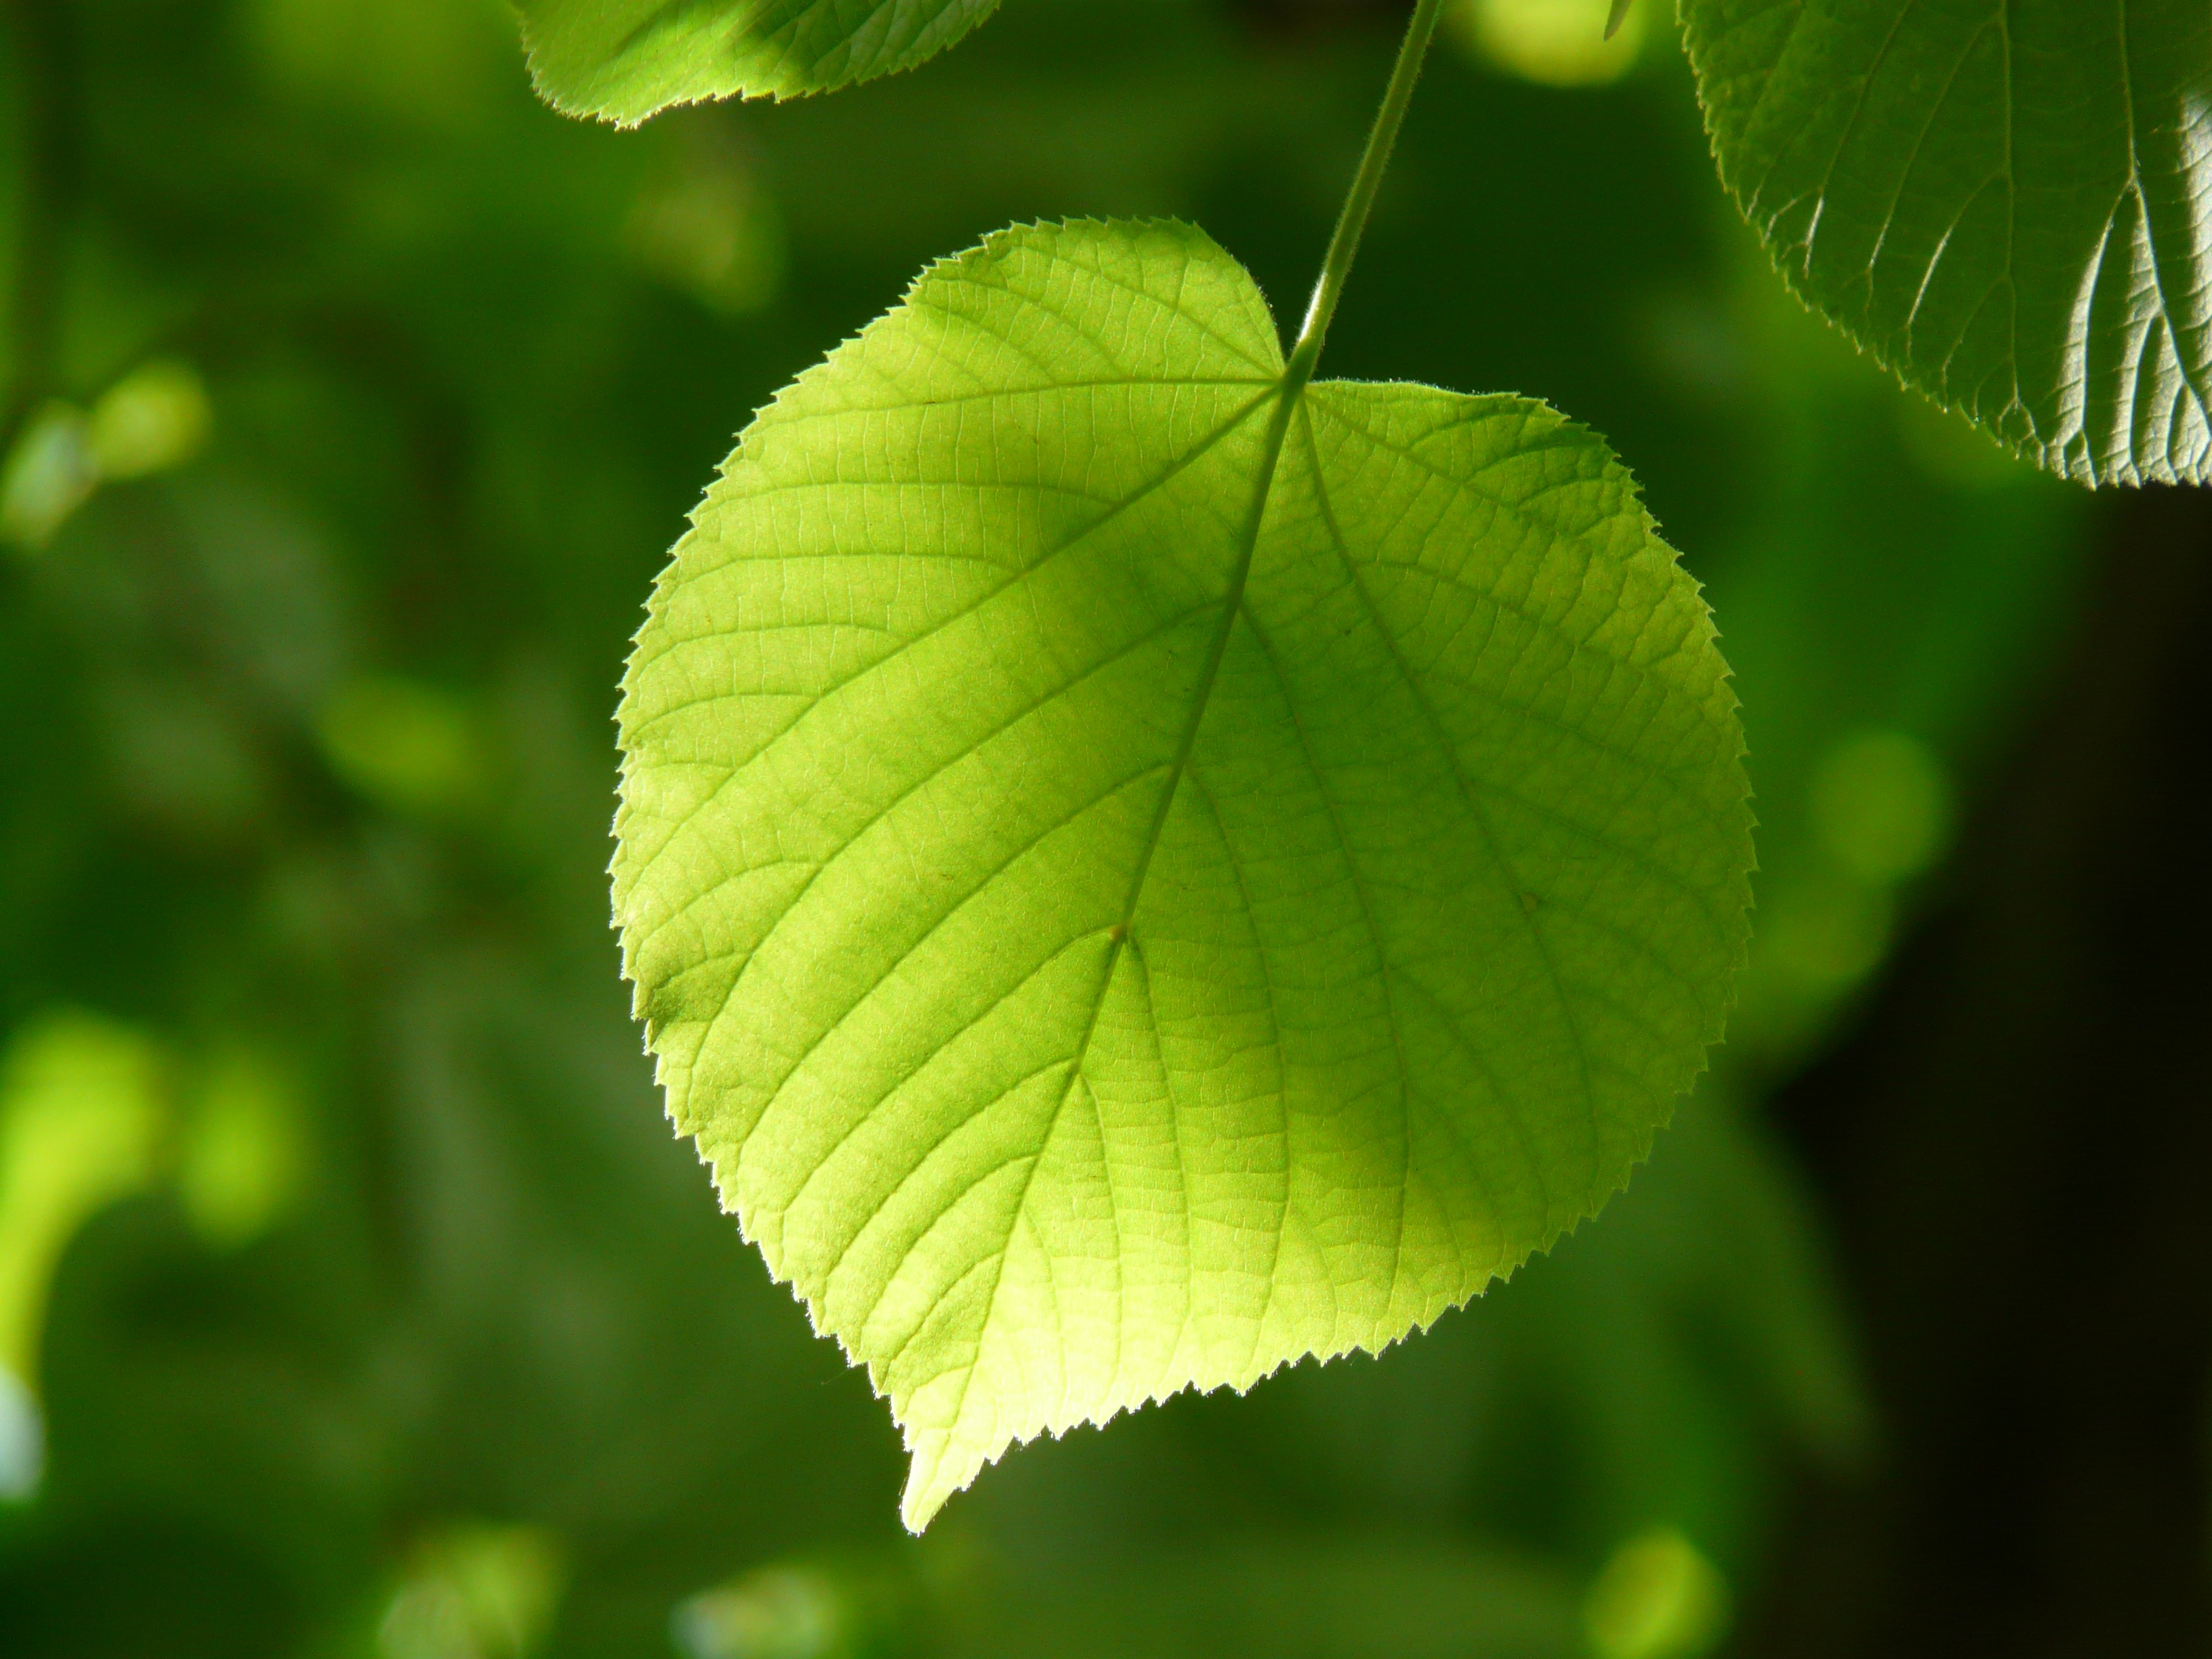 Iphone X Wallpaper Hd 4k Green Leaf Close Up Photography 183 Free Stock Photo